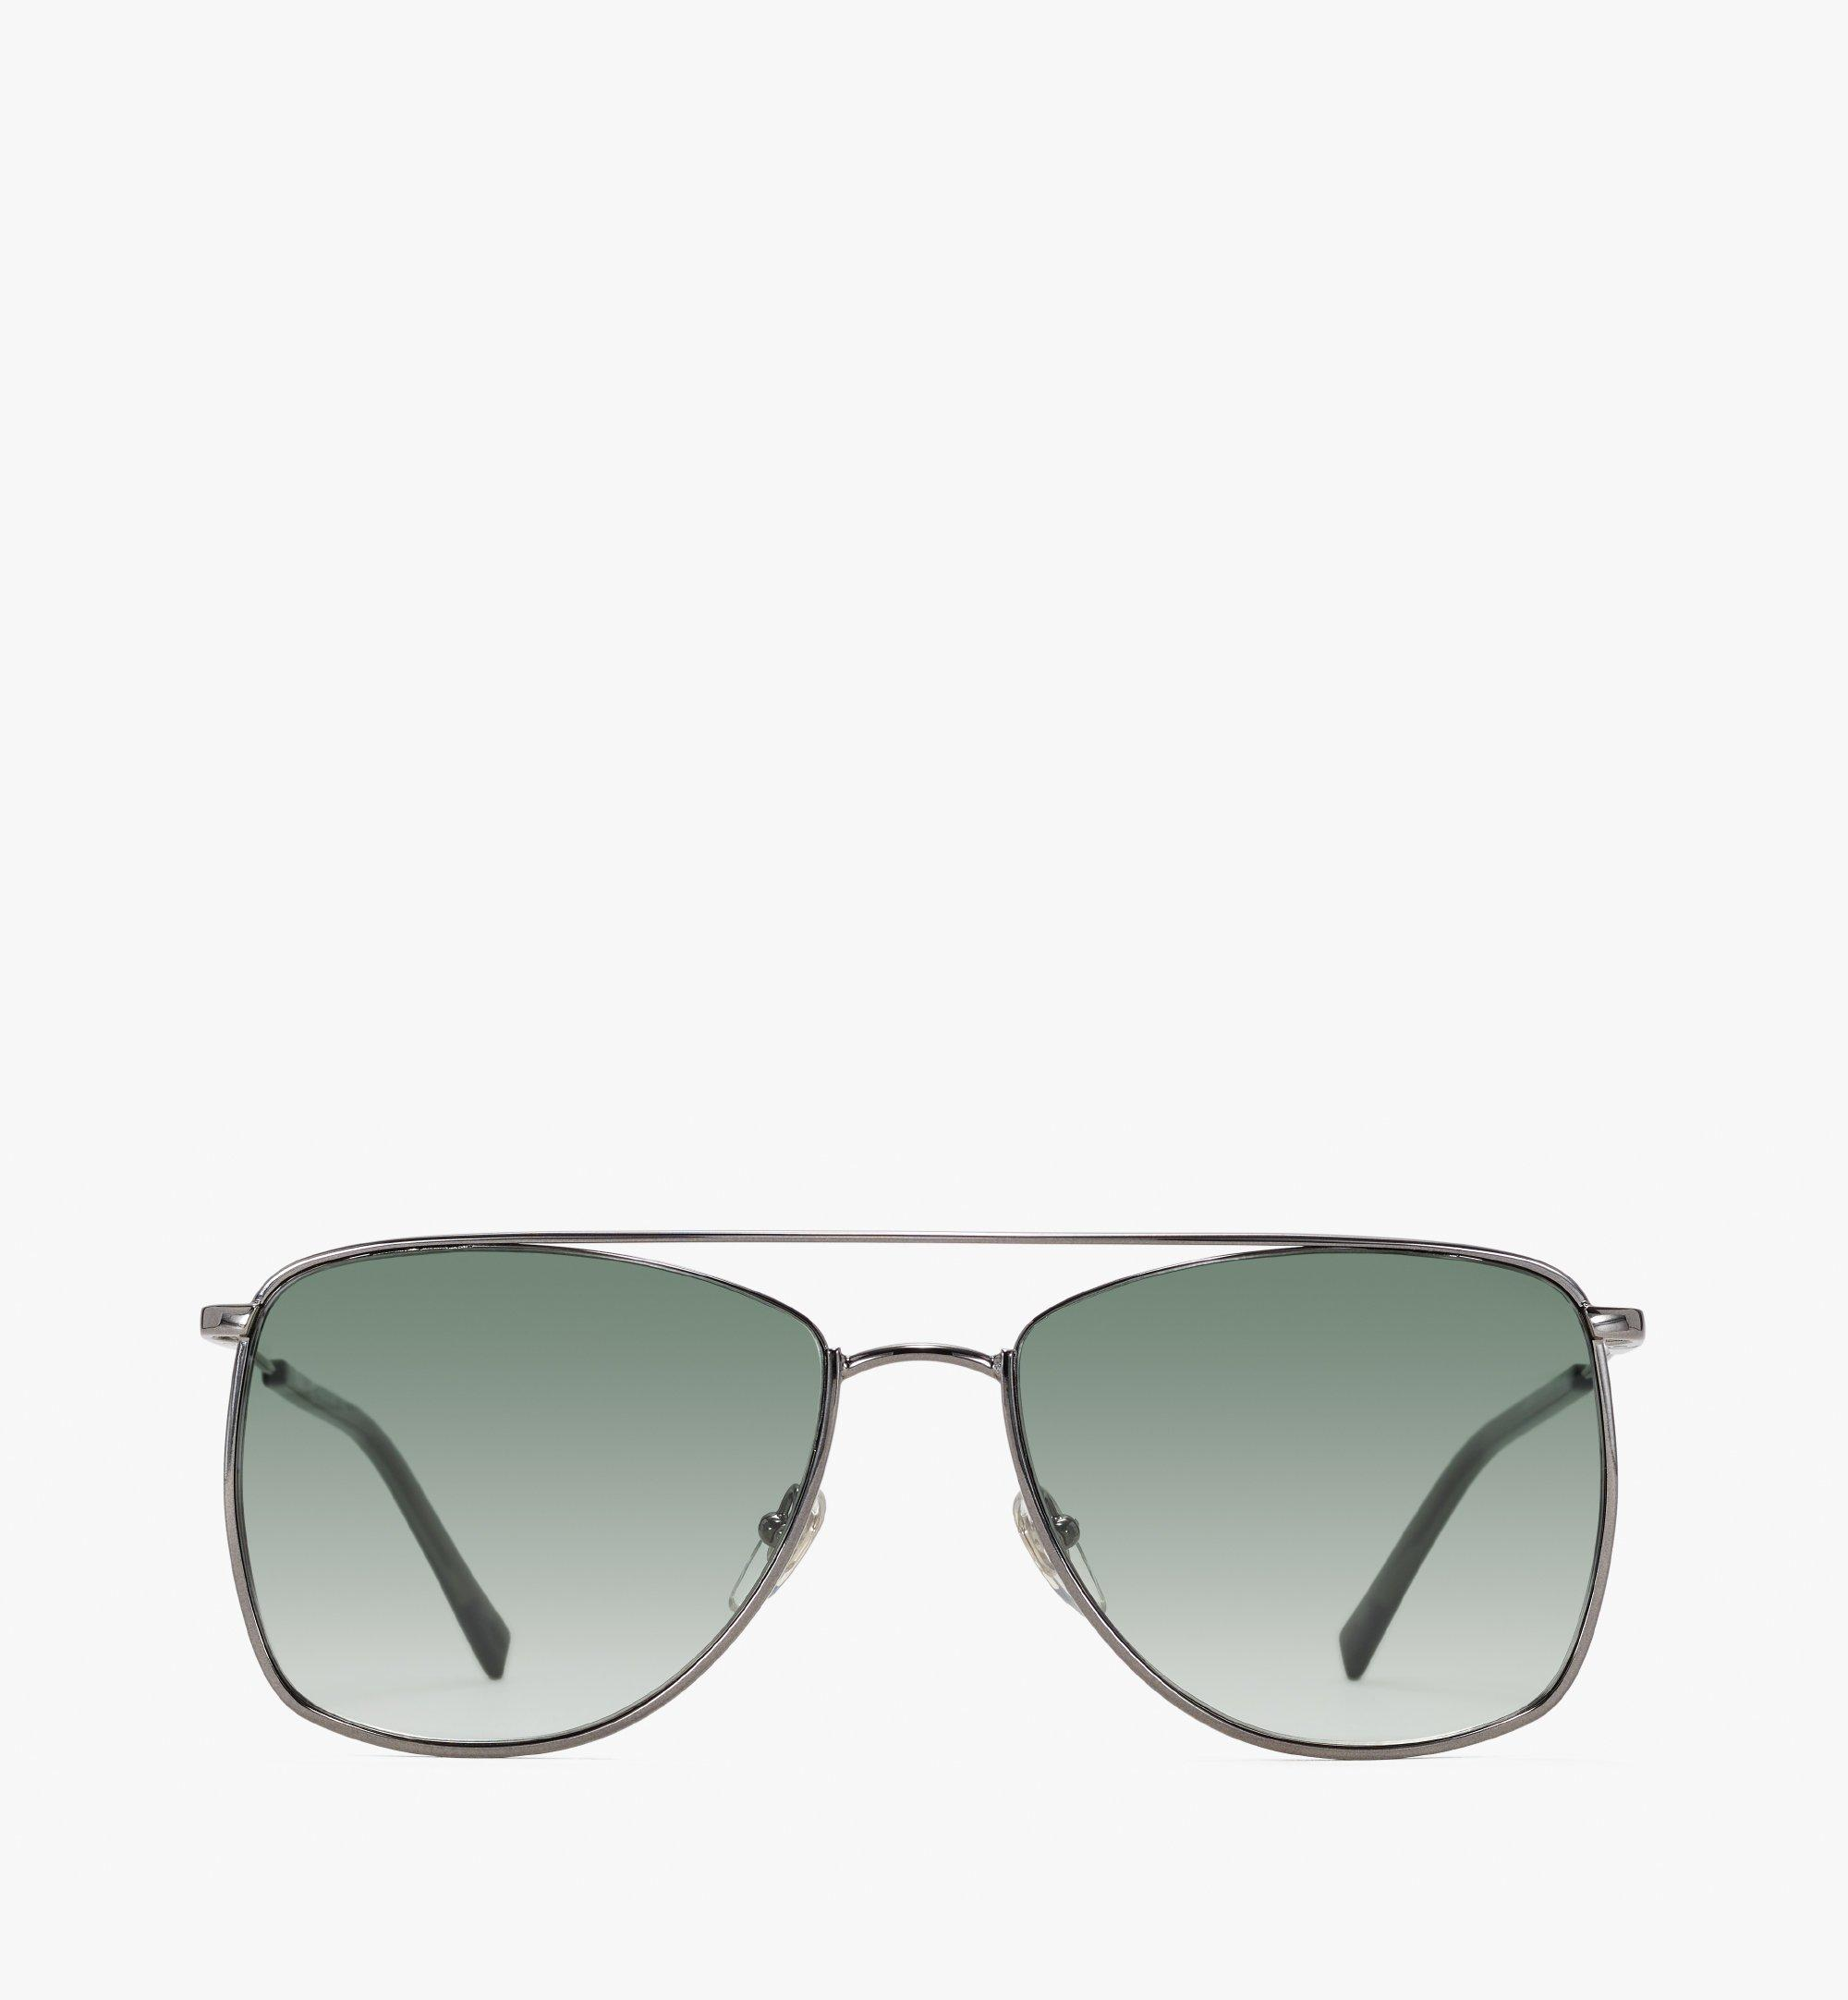 MCM 145S Aviator Sunglasses Green MEGASMM11GR001 Alternate View 1